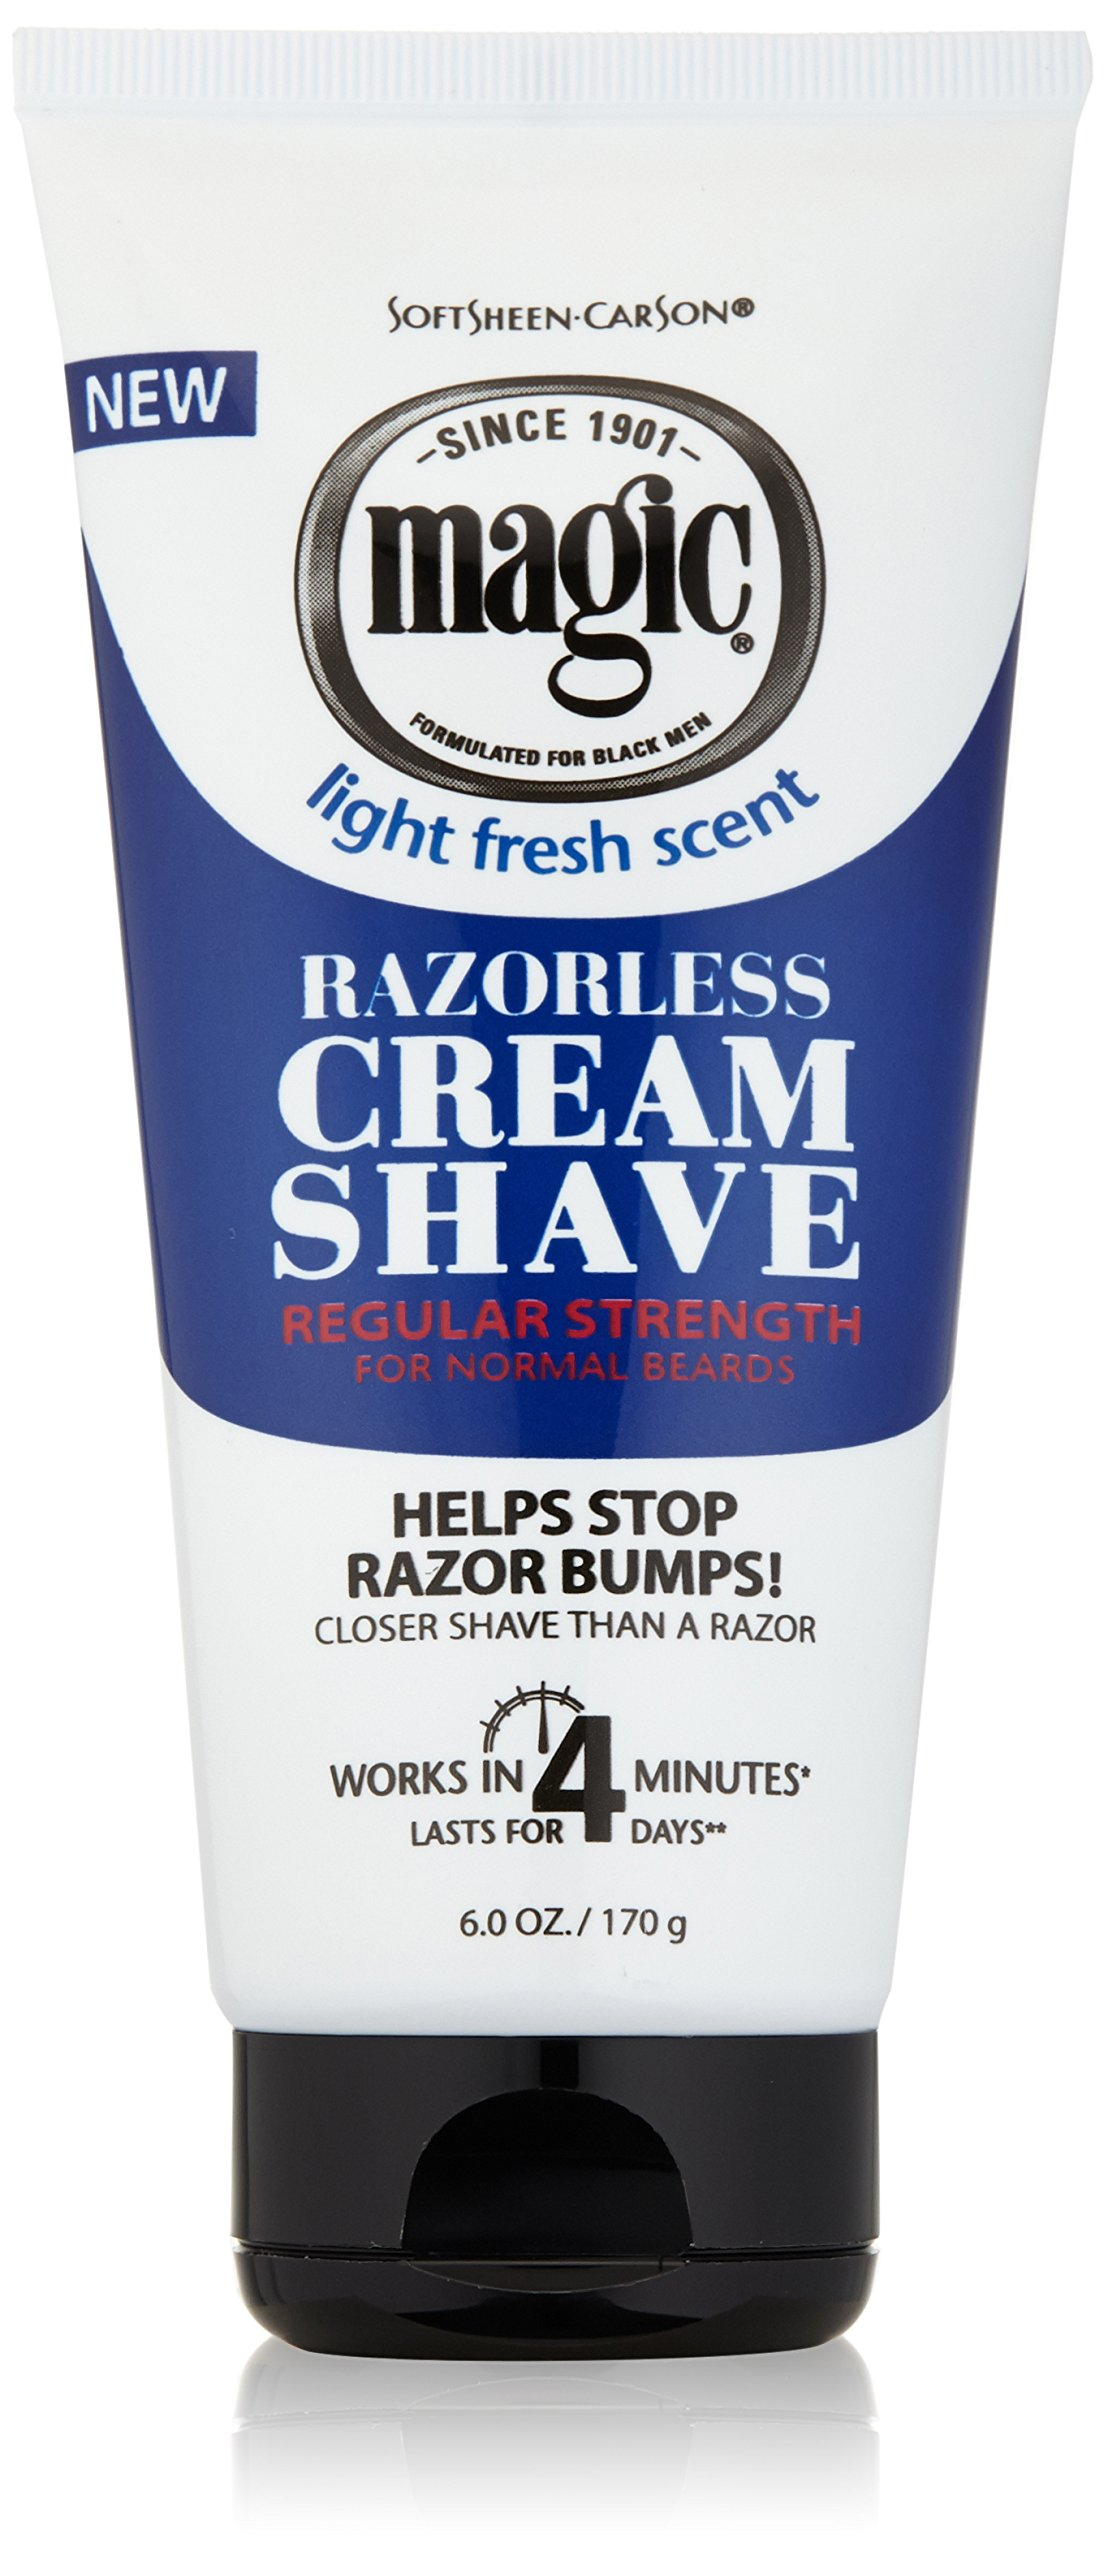 SoftSheen Carson Magic Regular Razorless Cream Shave 6 Oz (Pack of 6)